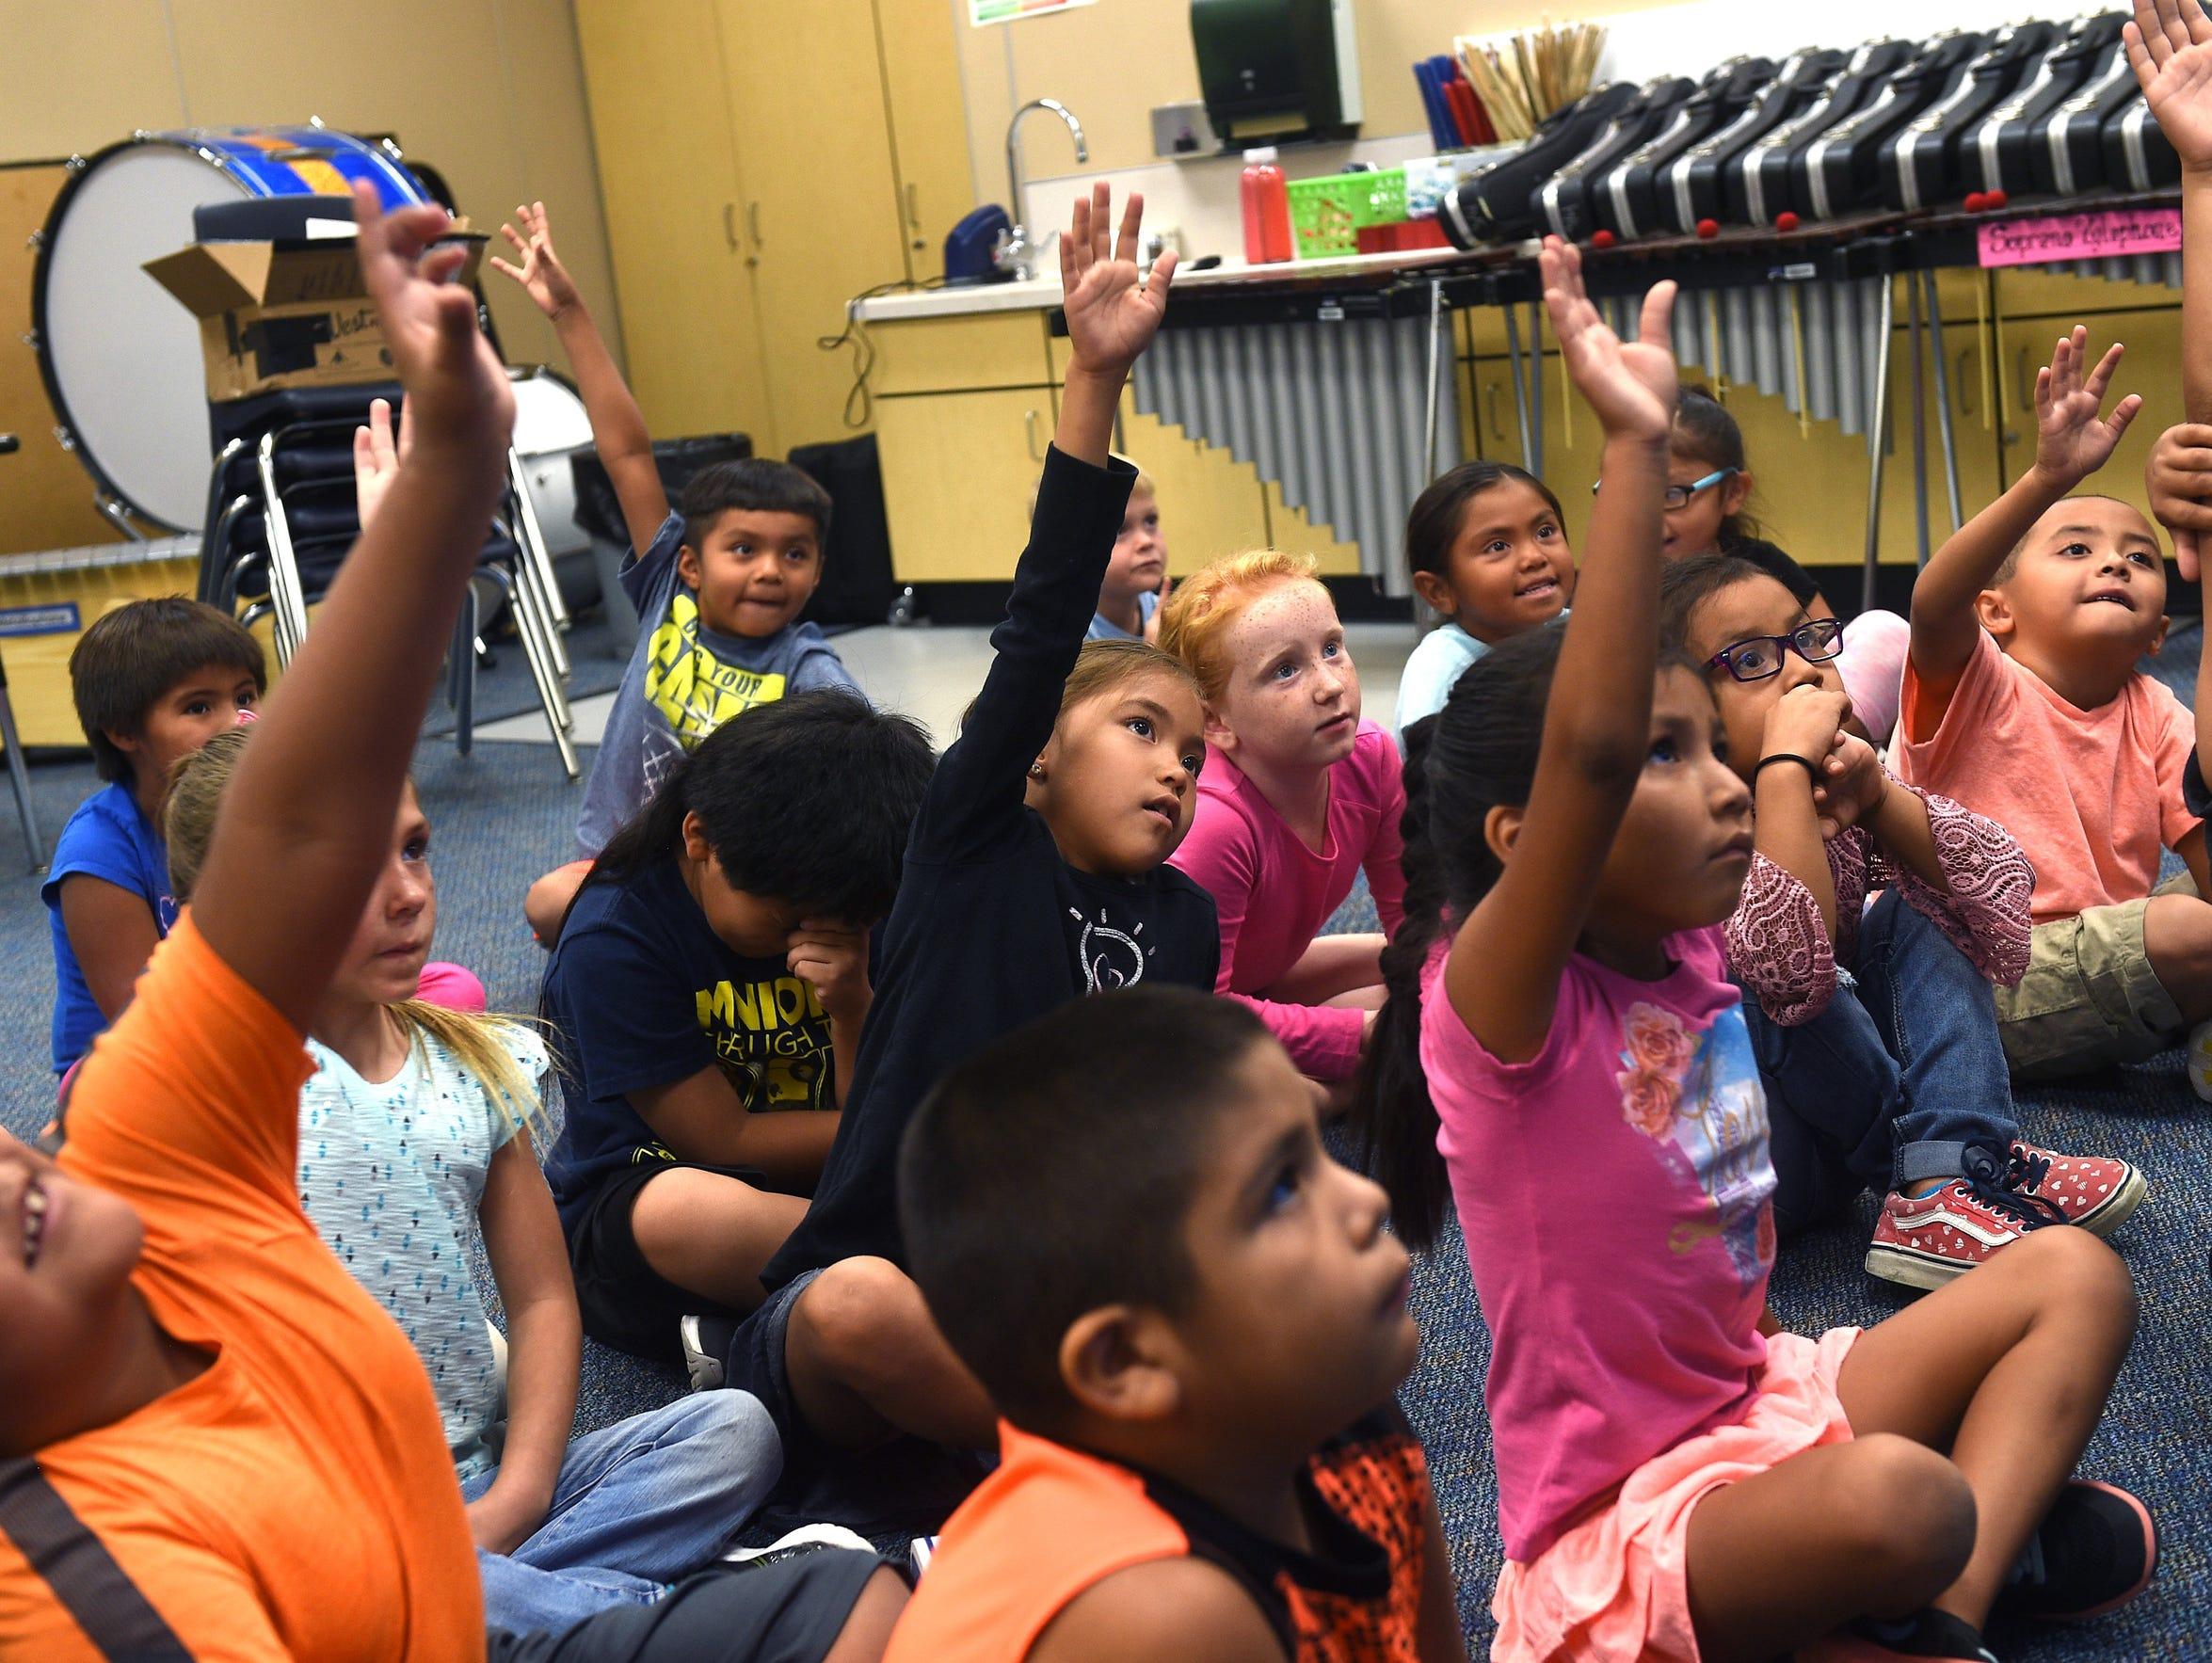 Students are seen during a music class at Natchez Elementary